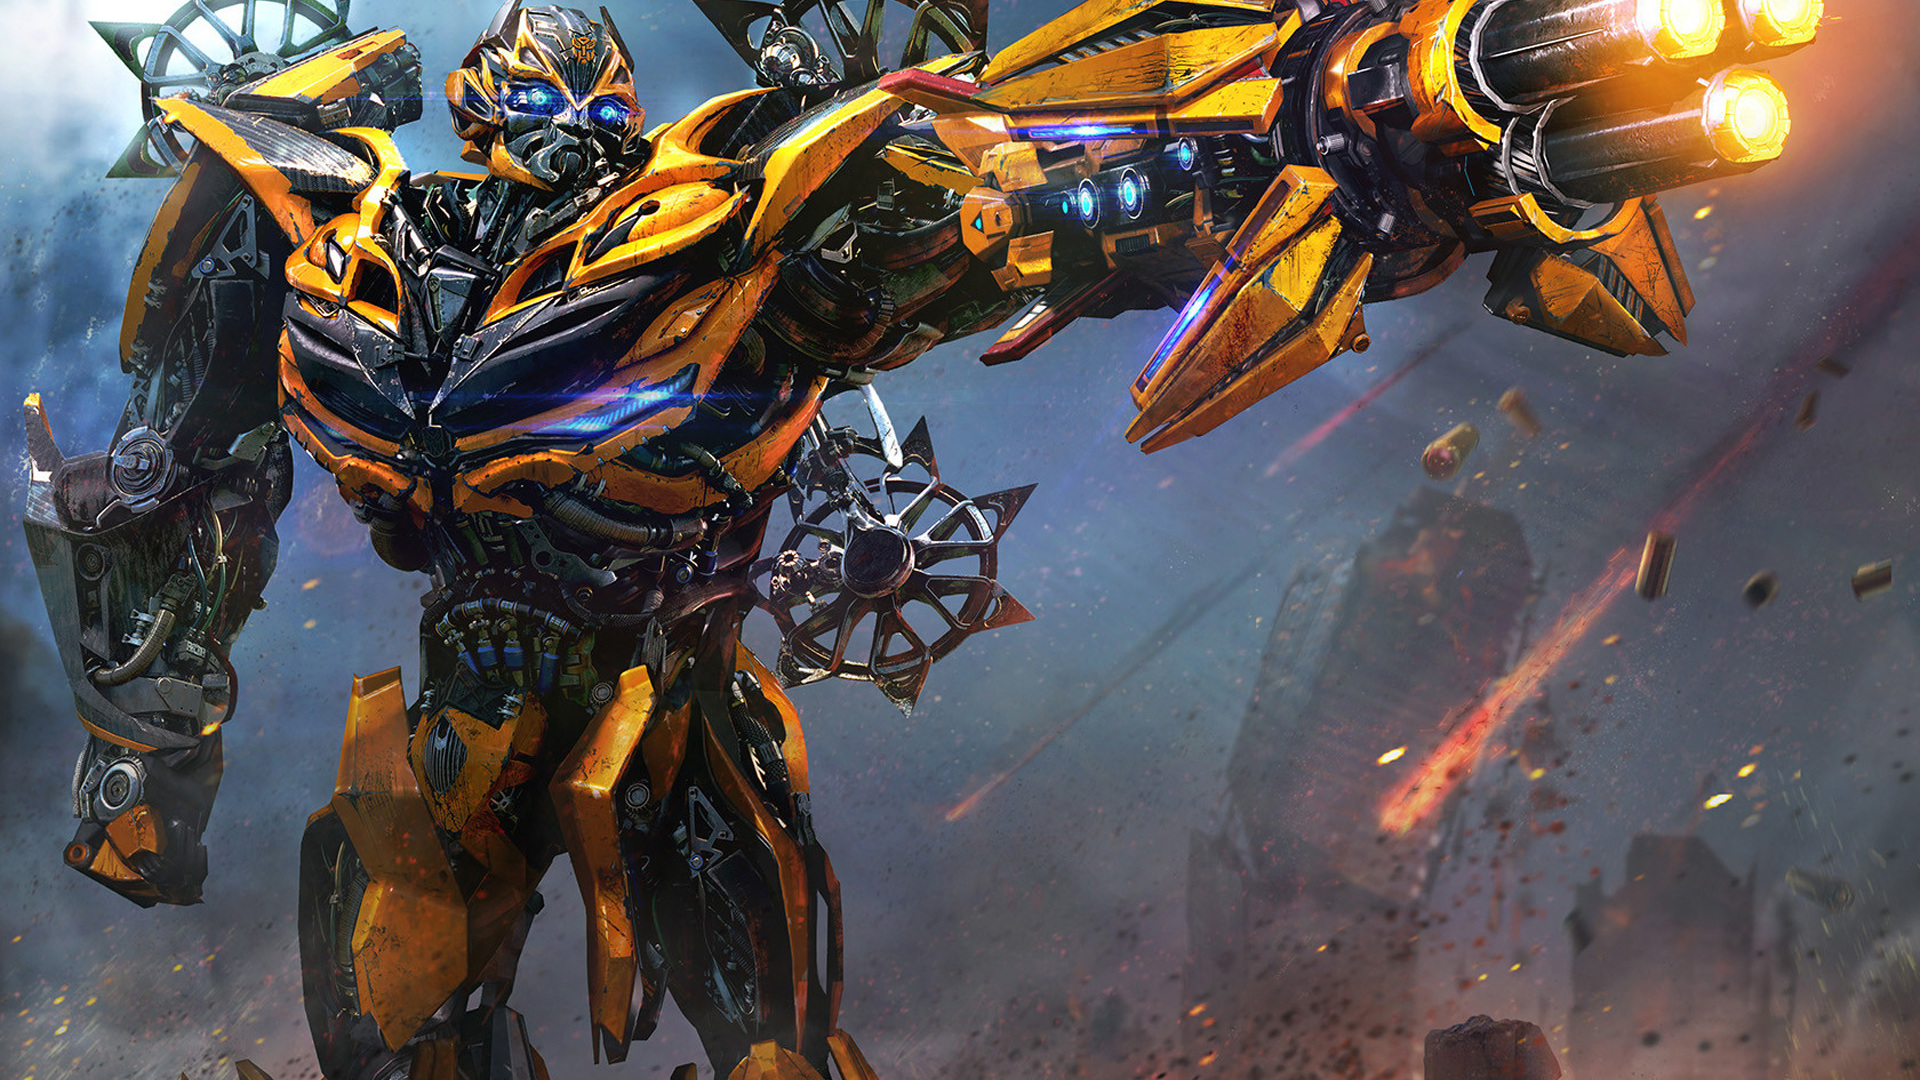 1920x1080 transformers bumblebee laptop full hd 1080p hd